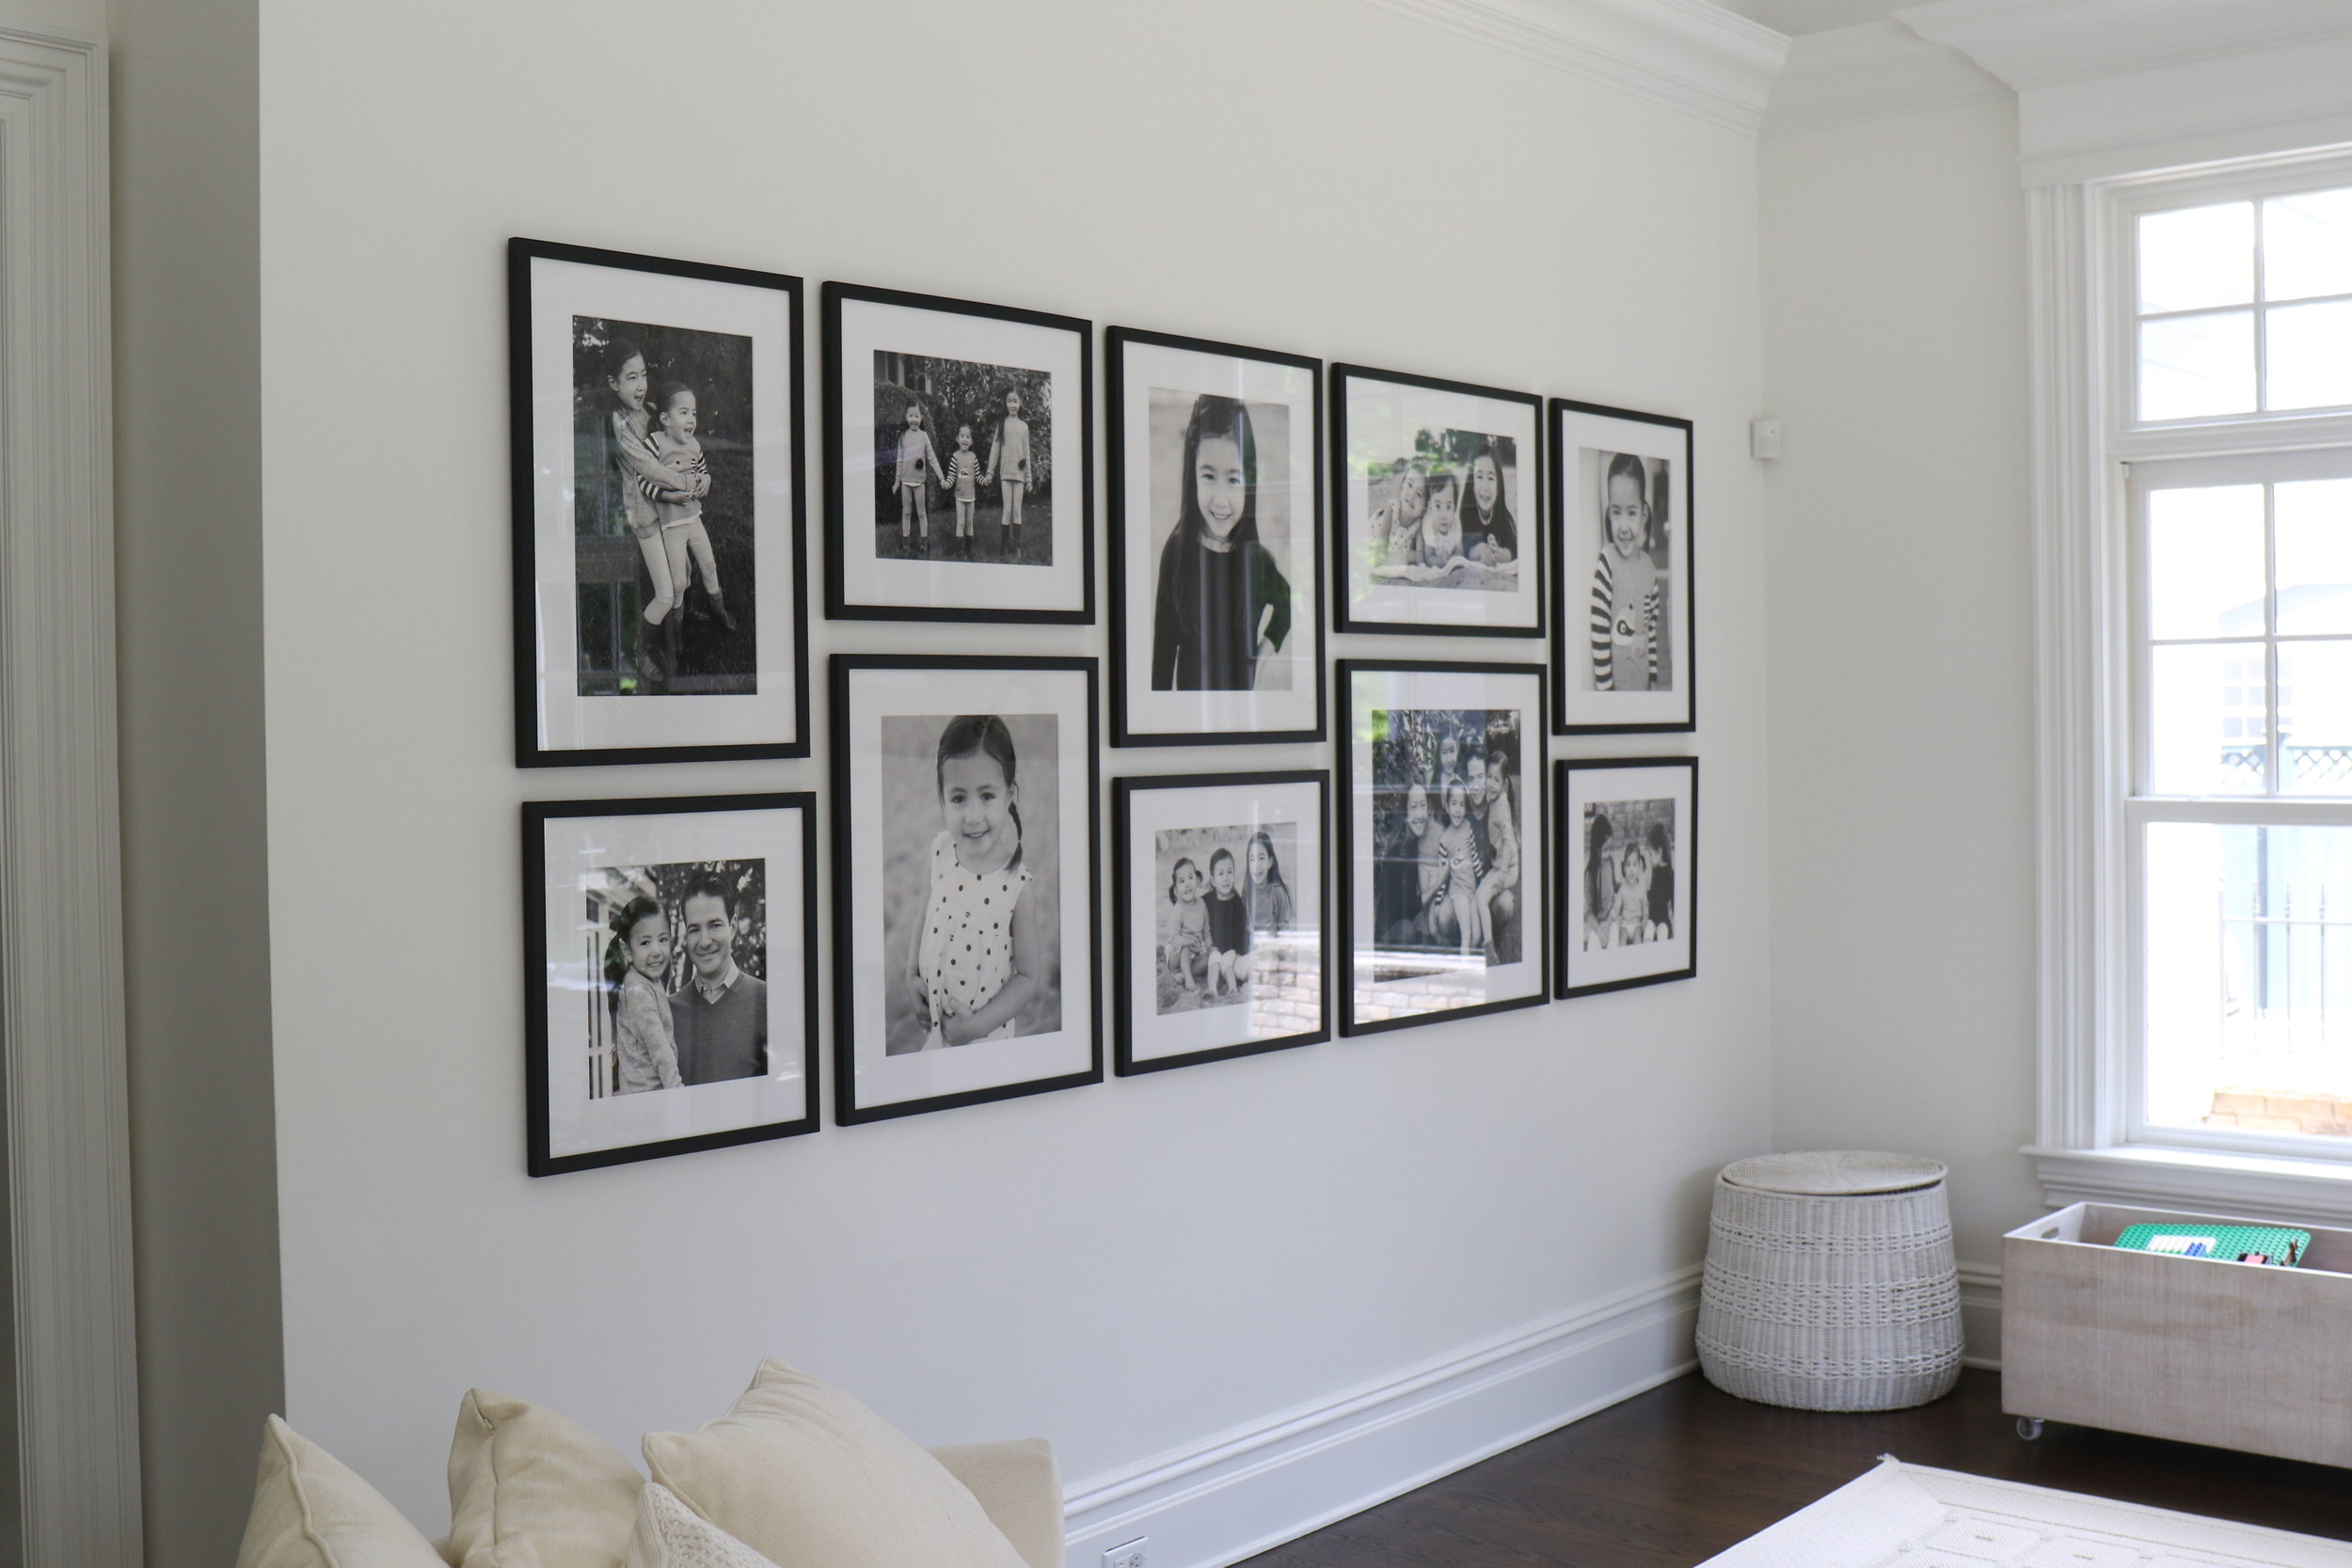 Gallery Walls - All of our installations are custom designed for your space and your style.